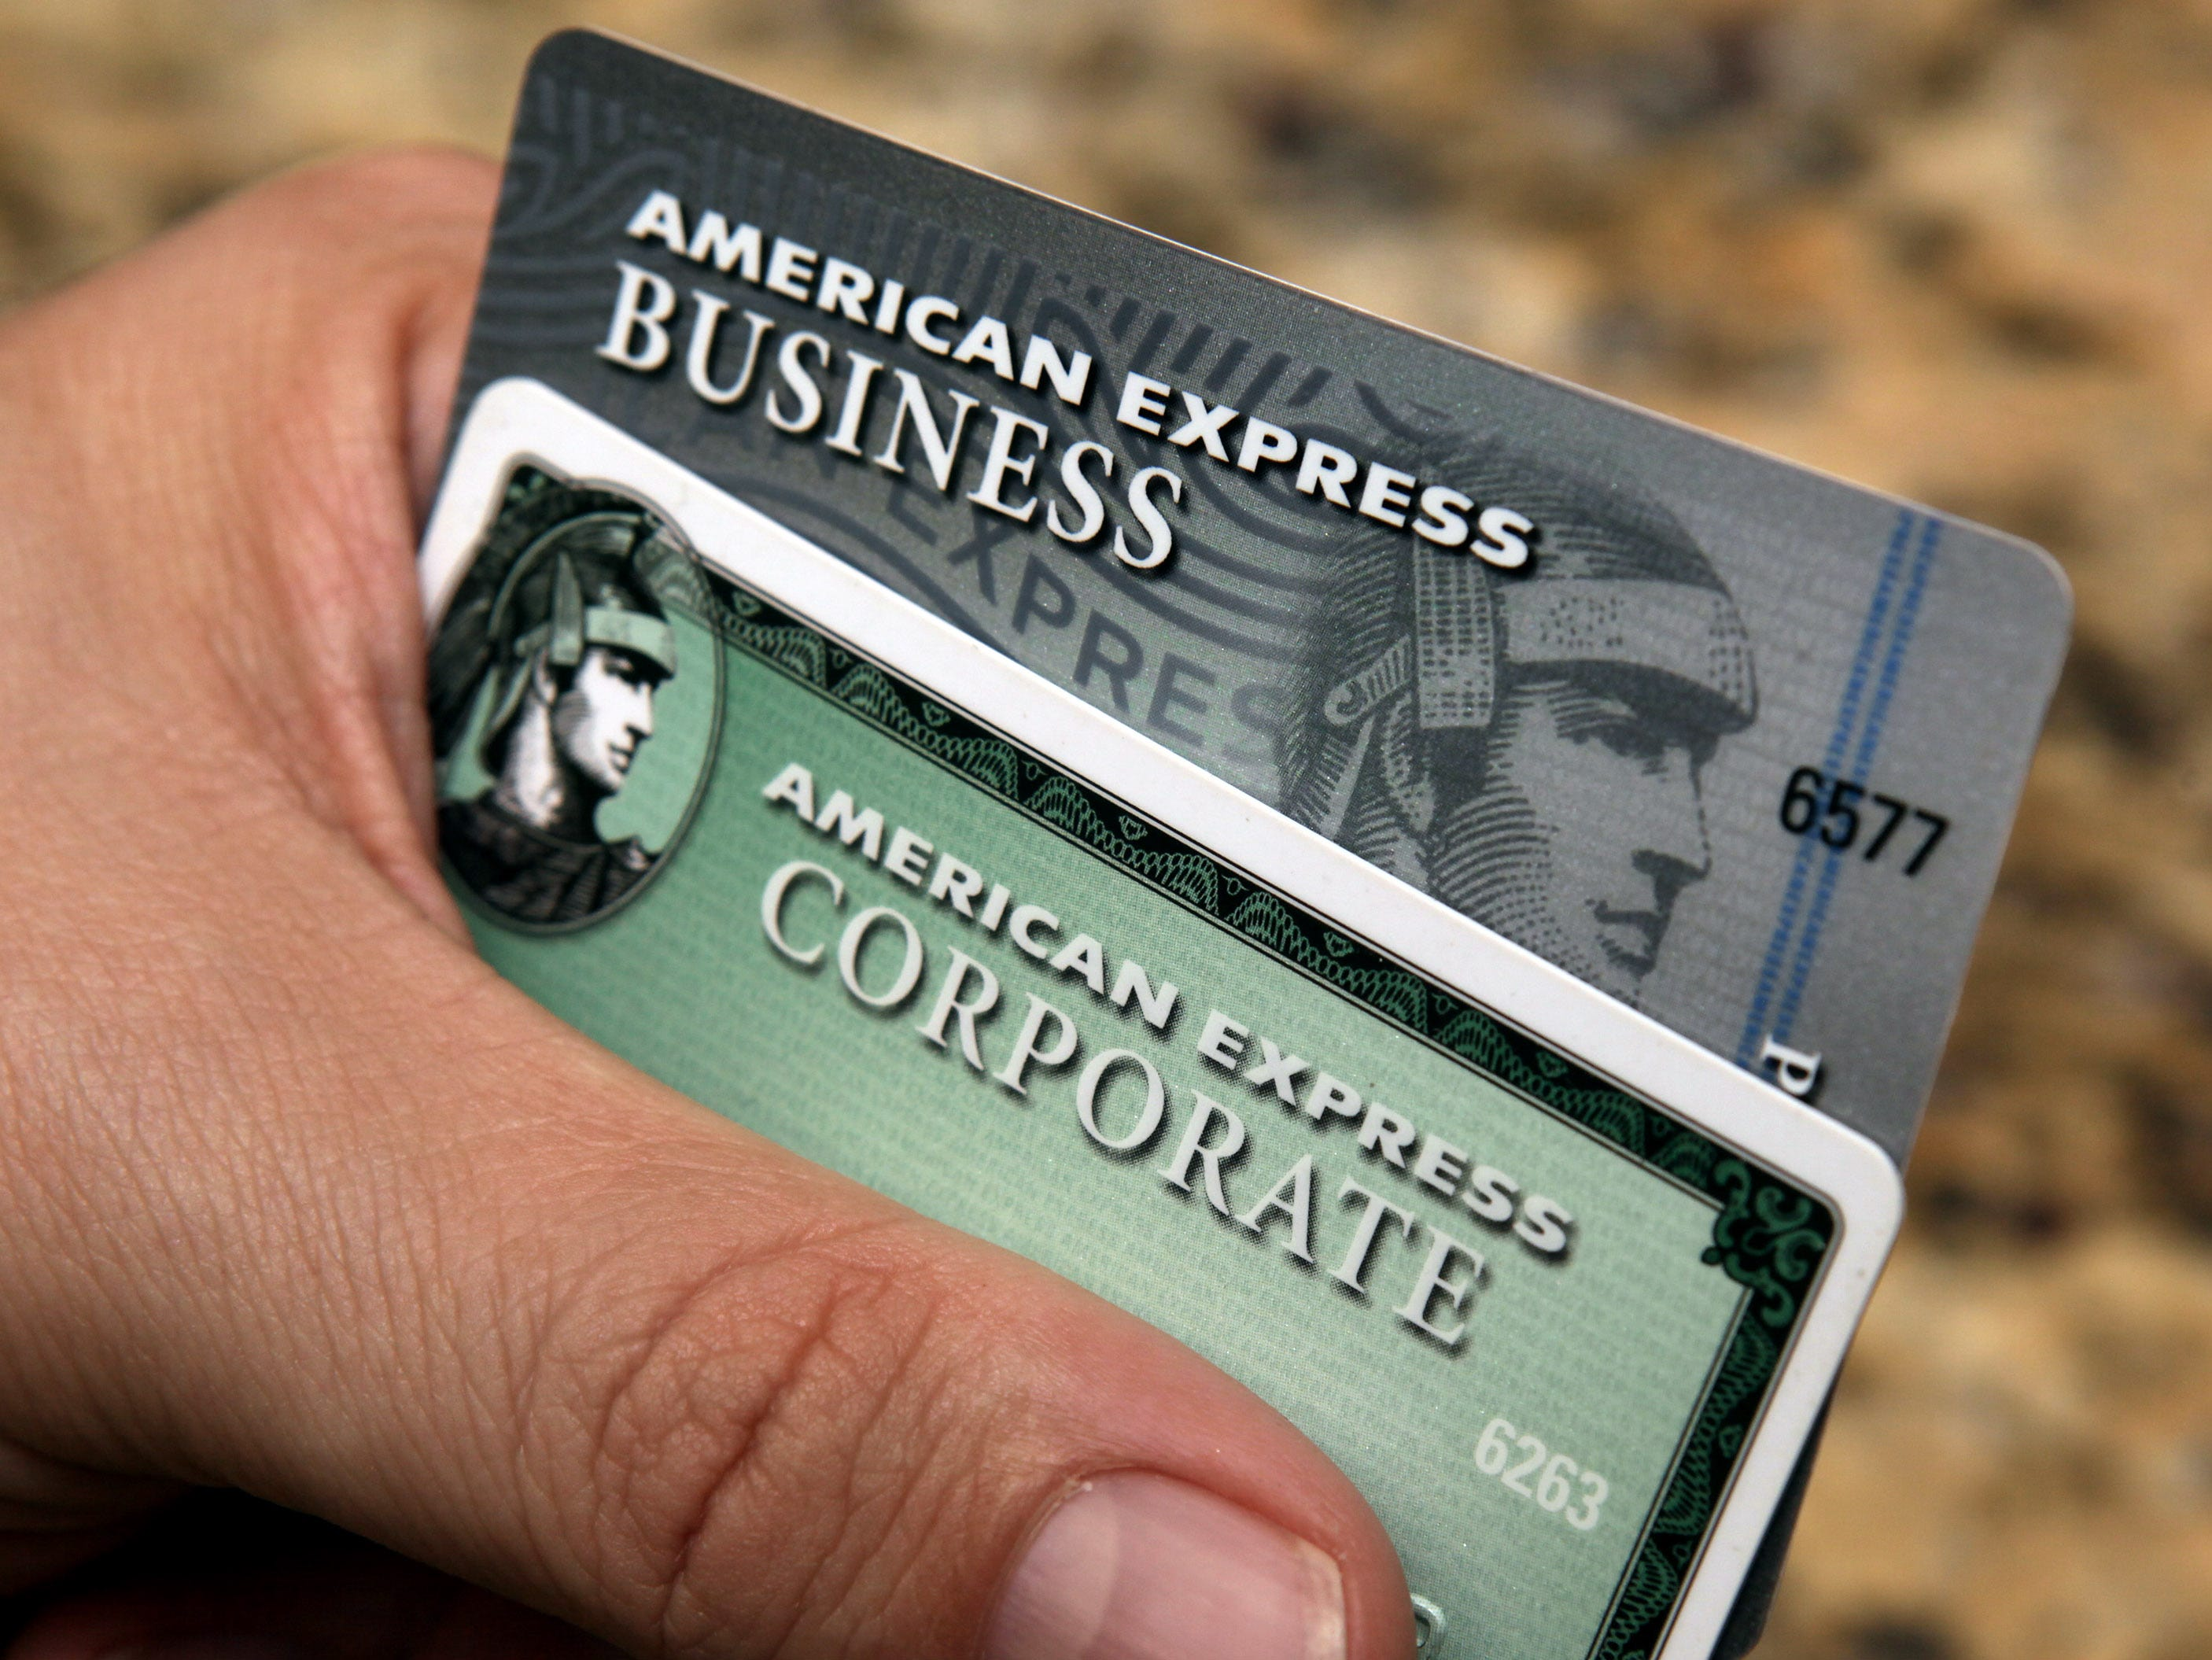 American Express, hiring 360. The financial-services company is adding jobs in the Phoenix area. More info: careers.americanexpress.com.